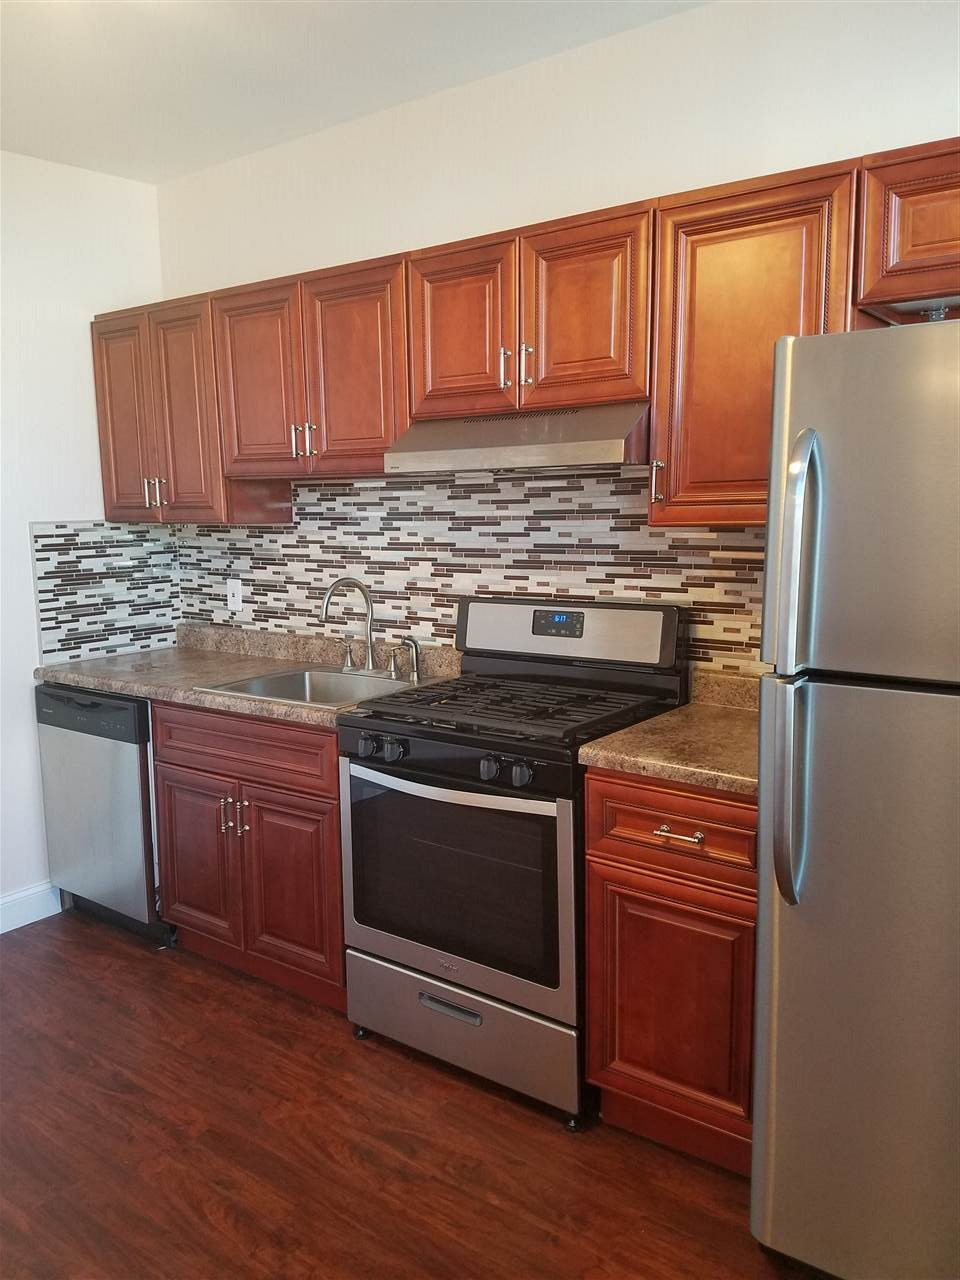 907 17TH ST, Union City, NJ 07087